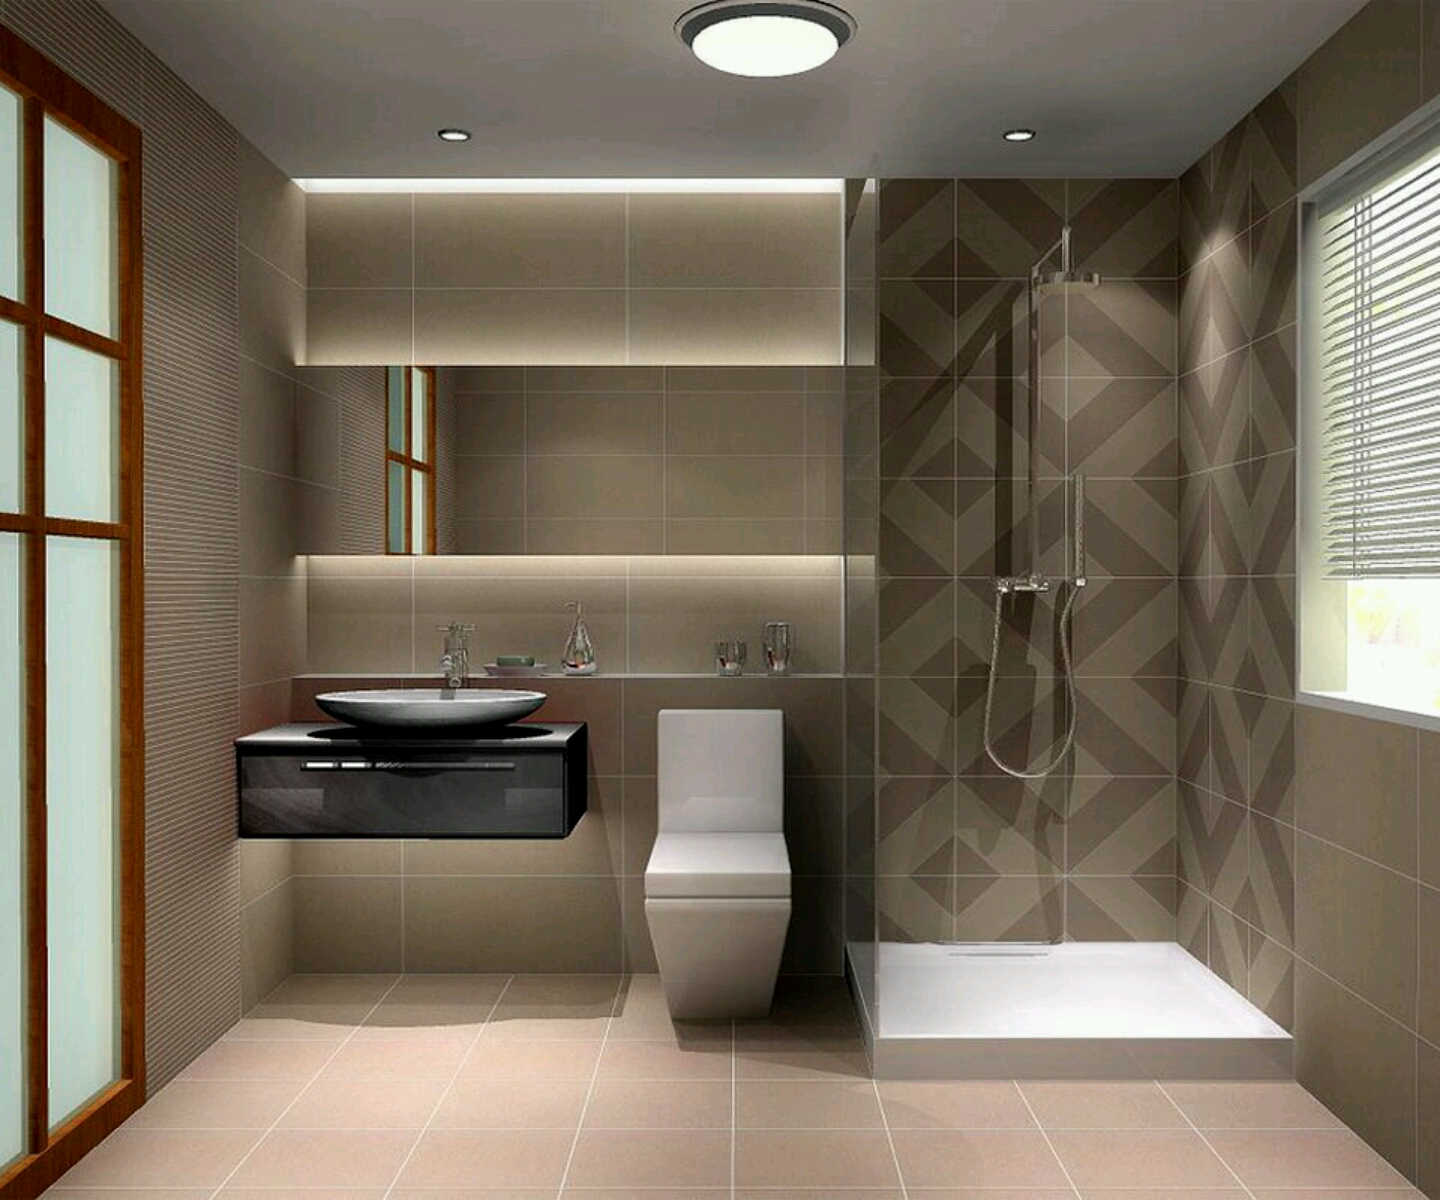 Small modern bathroom design 2017 grasscloth wallpaper for Bathroom design ideas modern